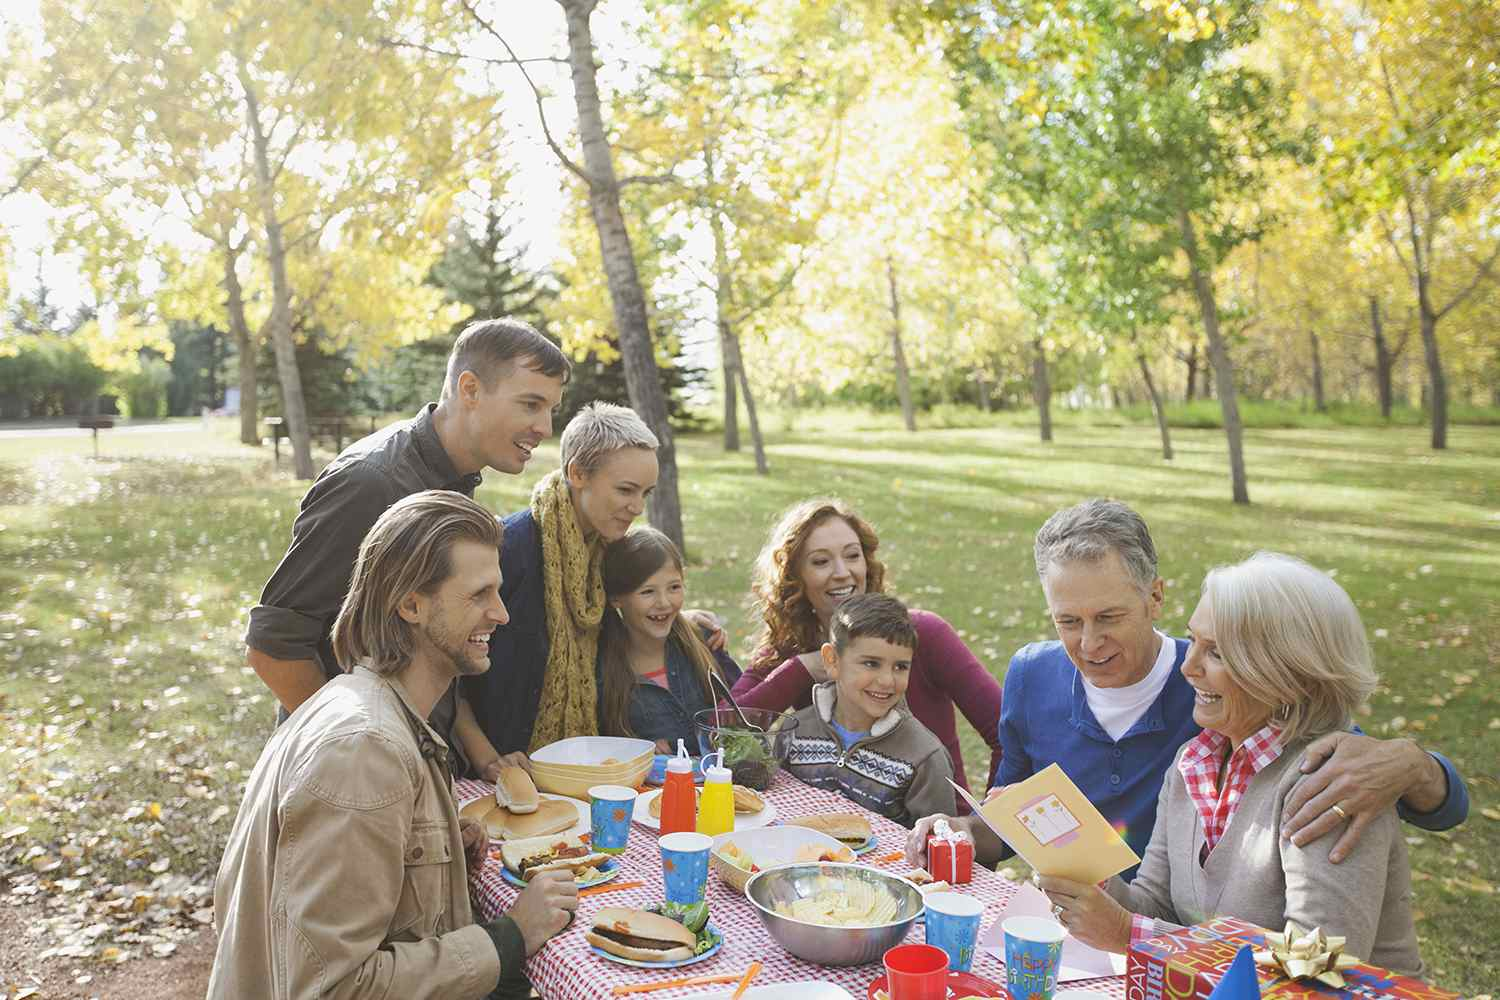 Happy Multi-Generation Listening to Mature Woman Reading Greeting Card in Park